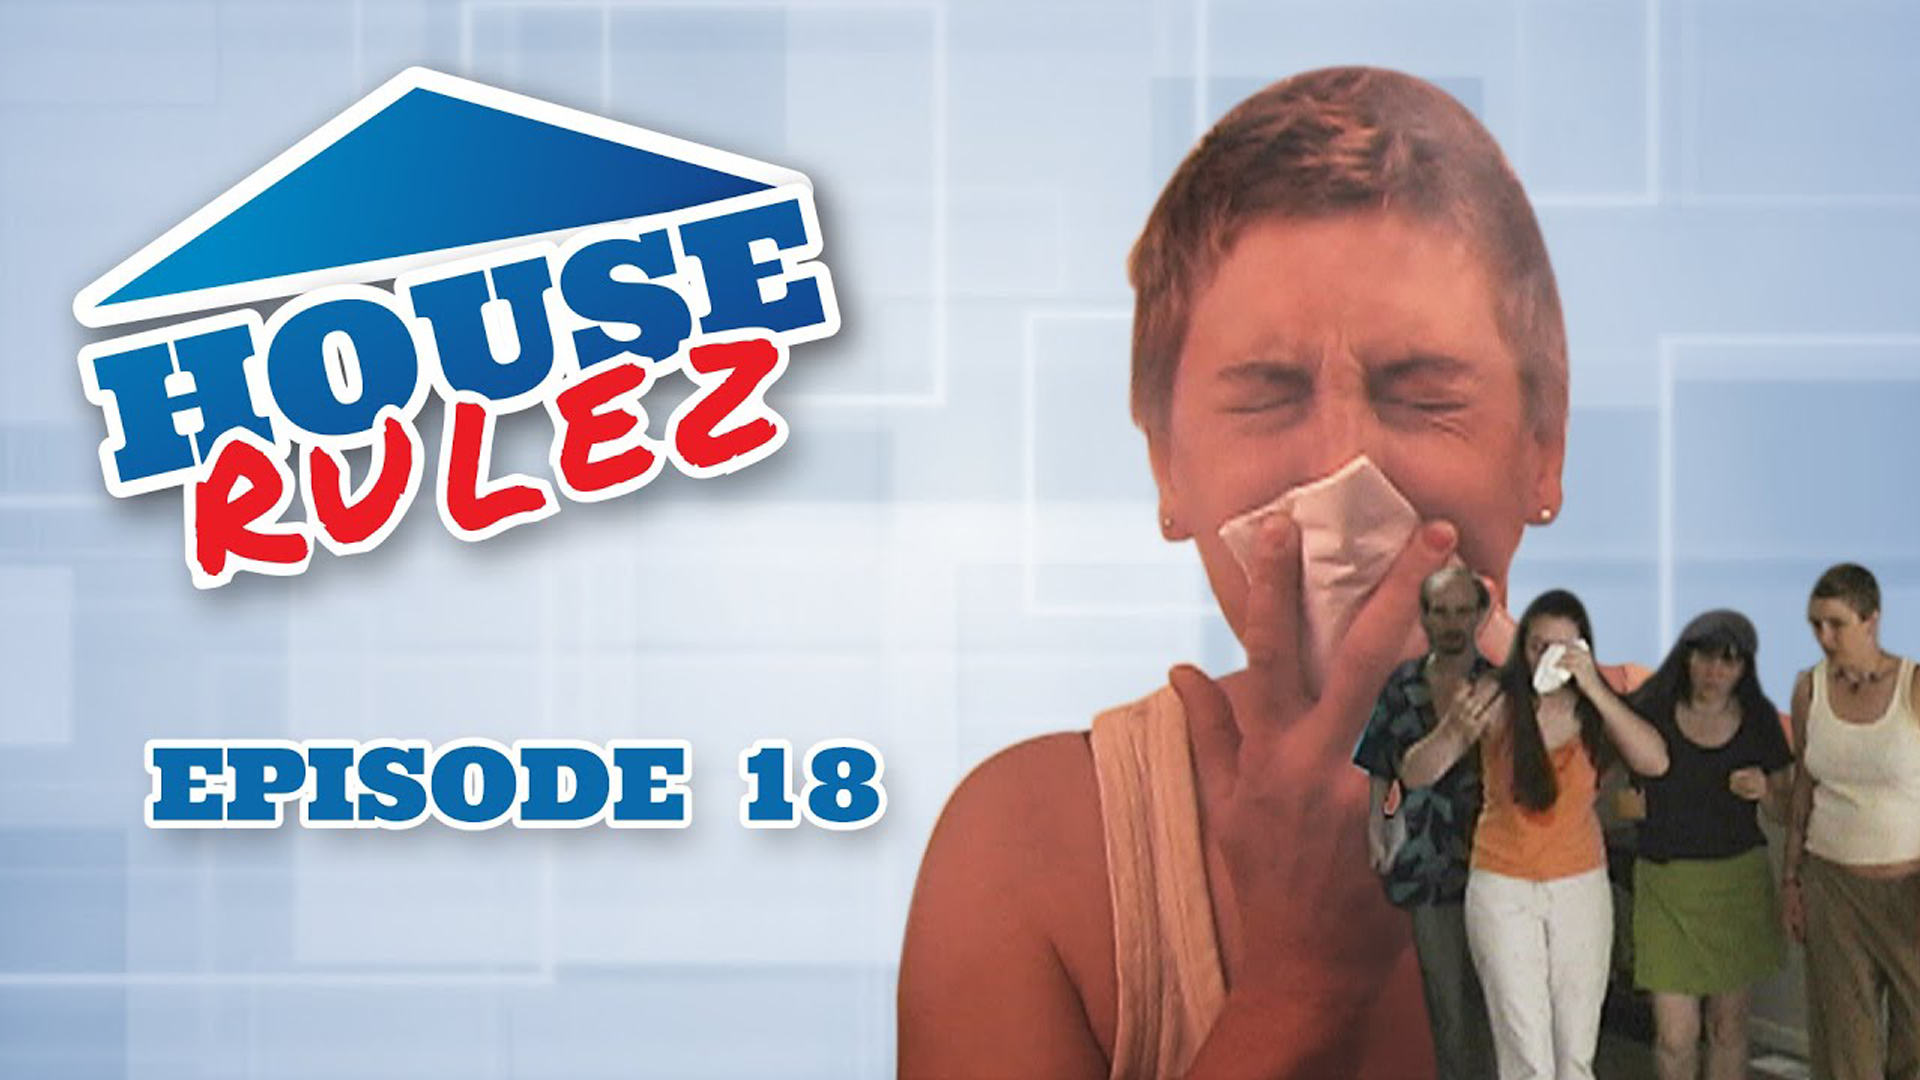 House Rulez Episode 18